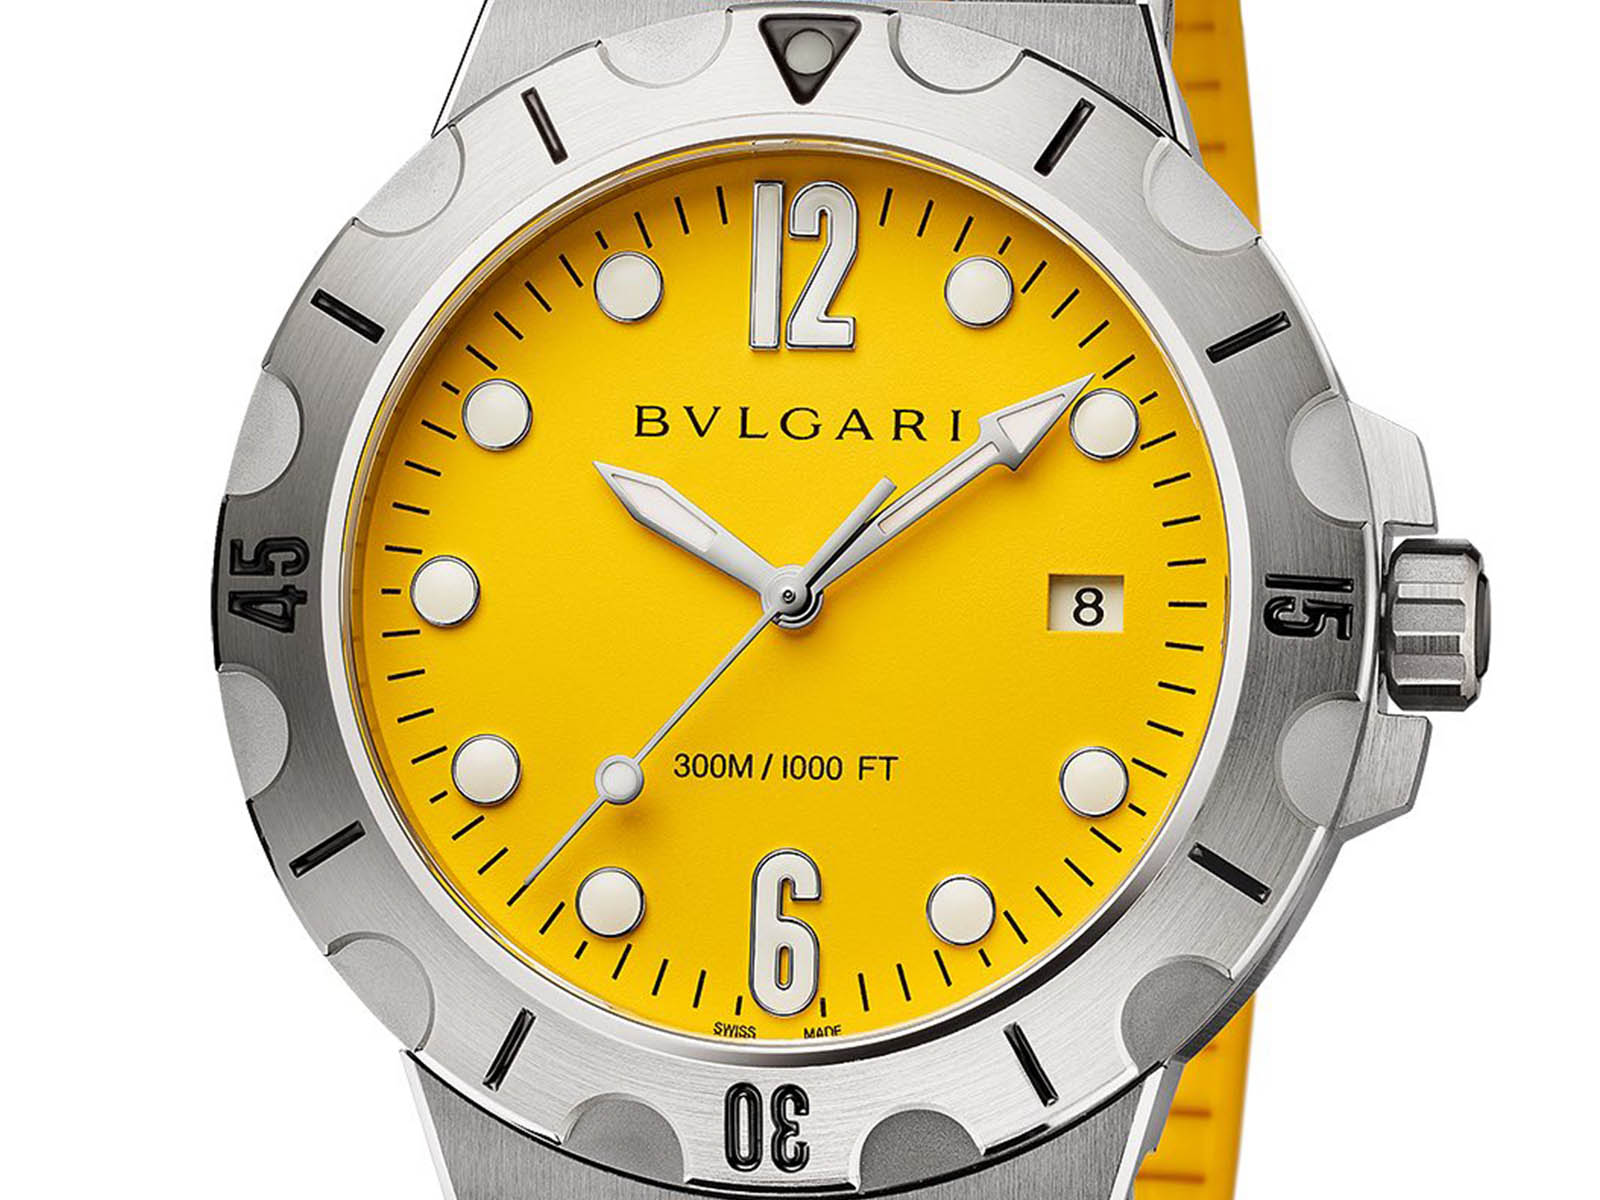 Bulgari-Diagono-Scuba-3-New-Dial-1.jpg